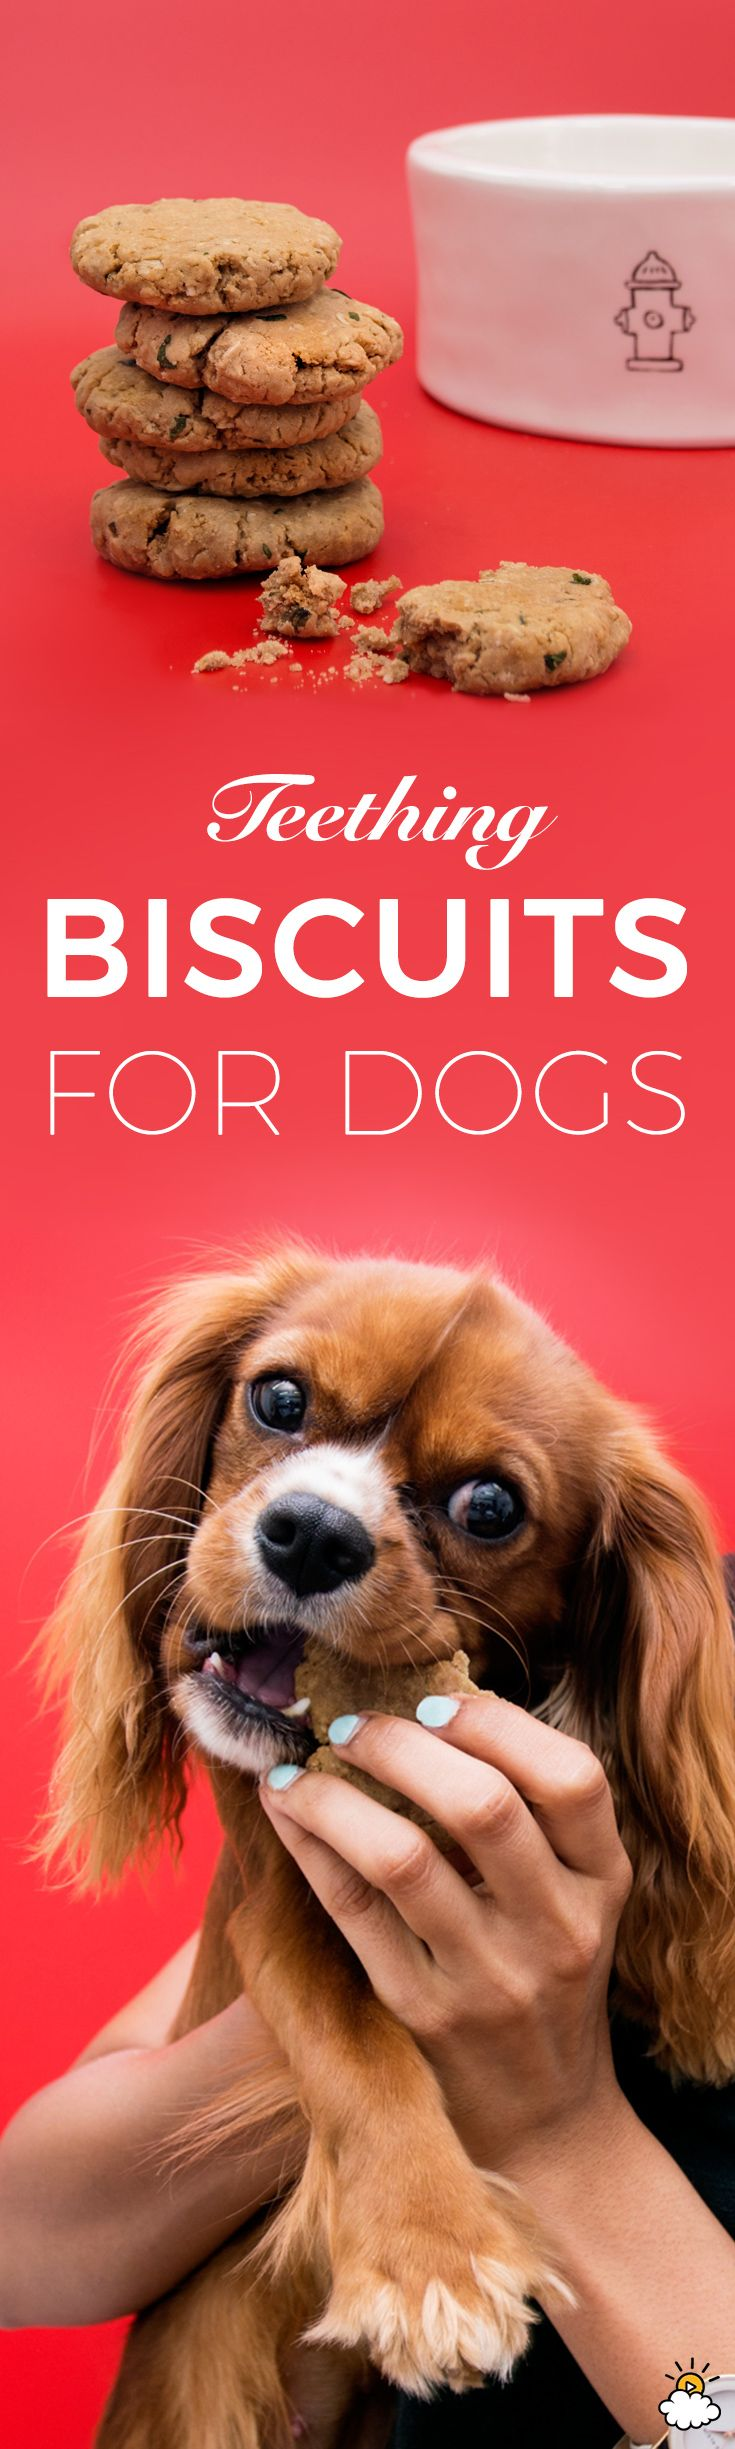 Teething Biscuits Recipe Puppy teething, Dogs, Puppy